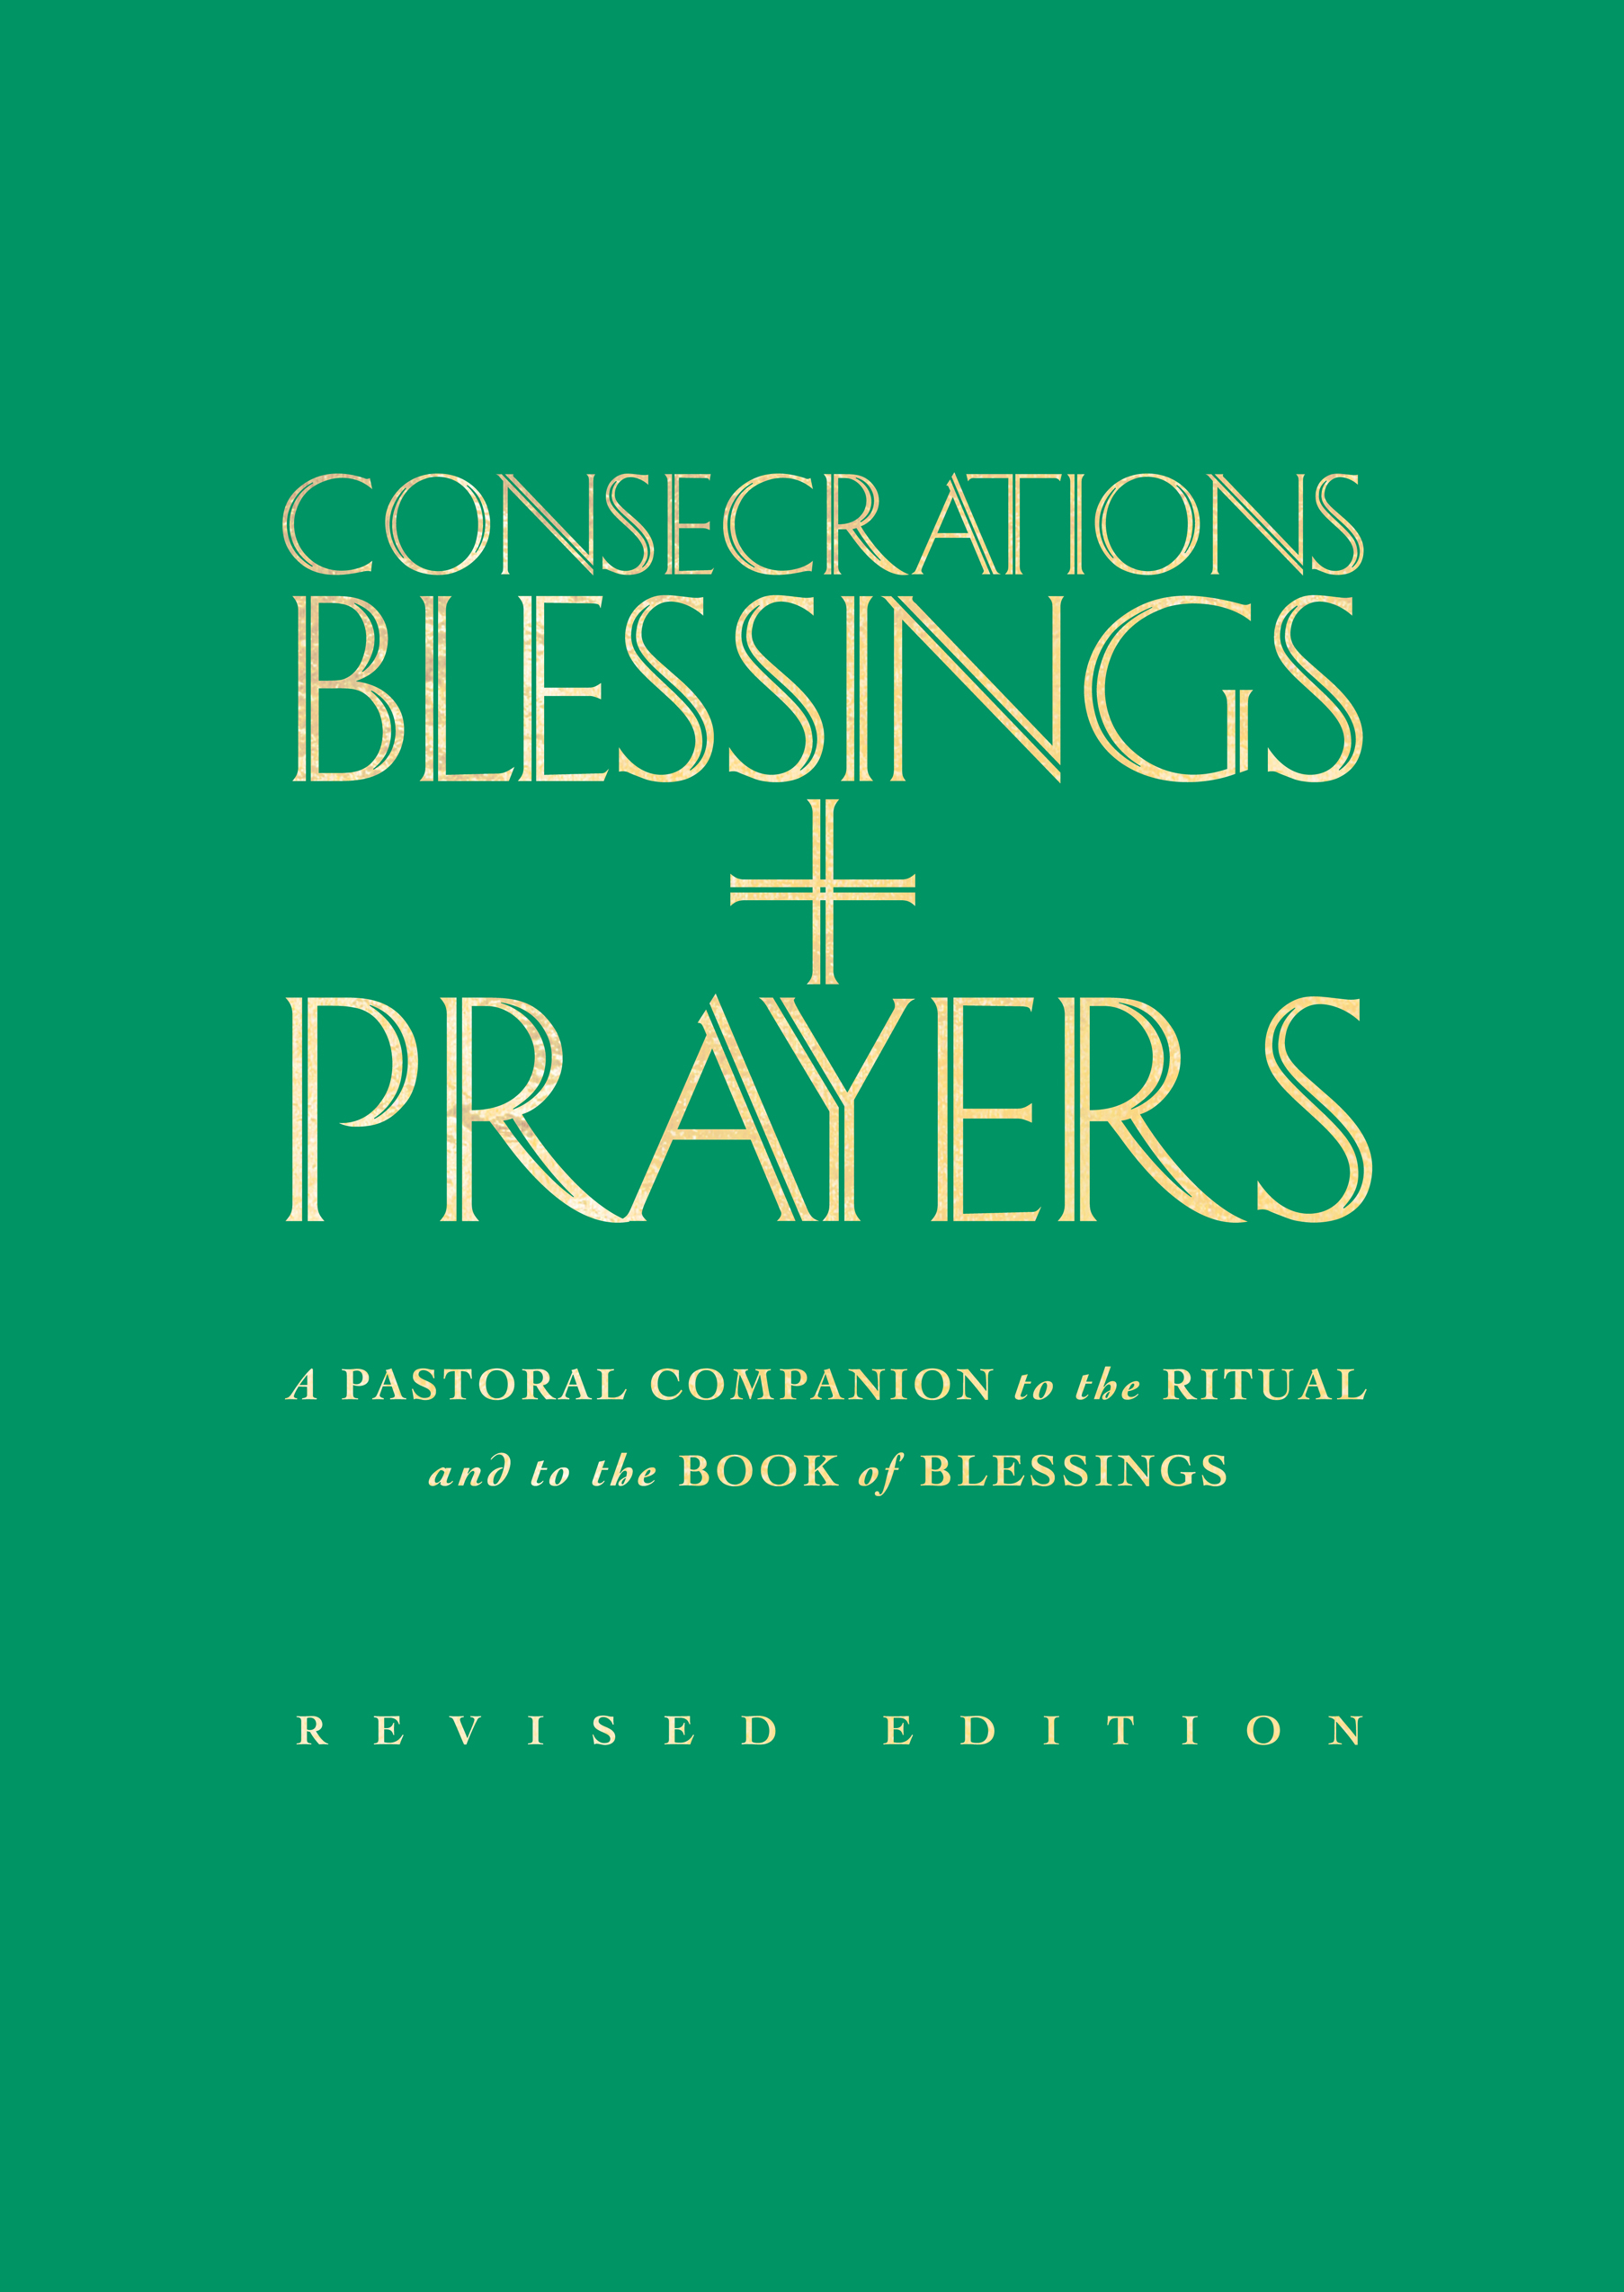 Consecrations Blessings and Prayers